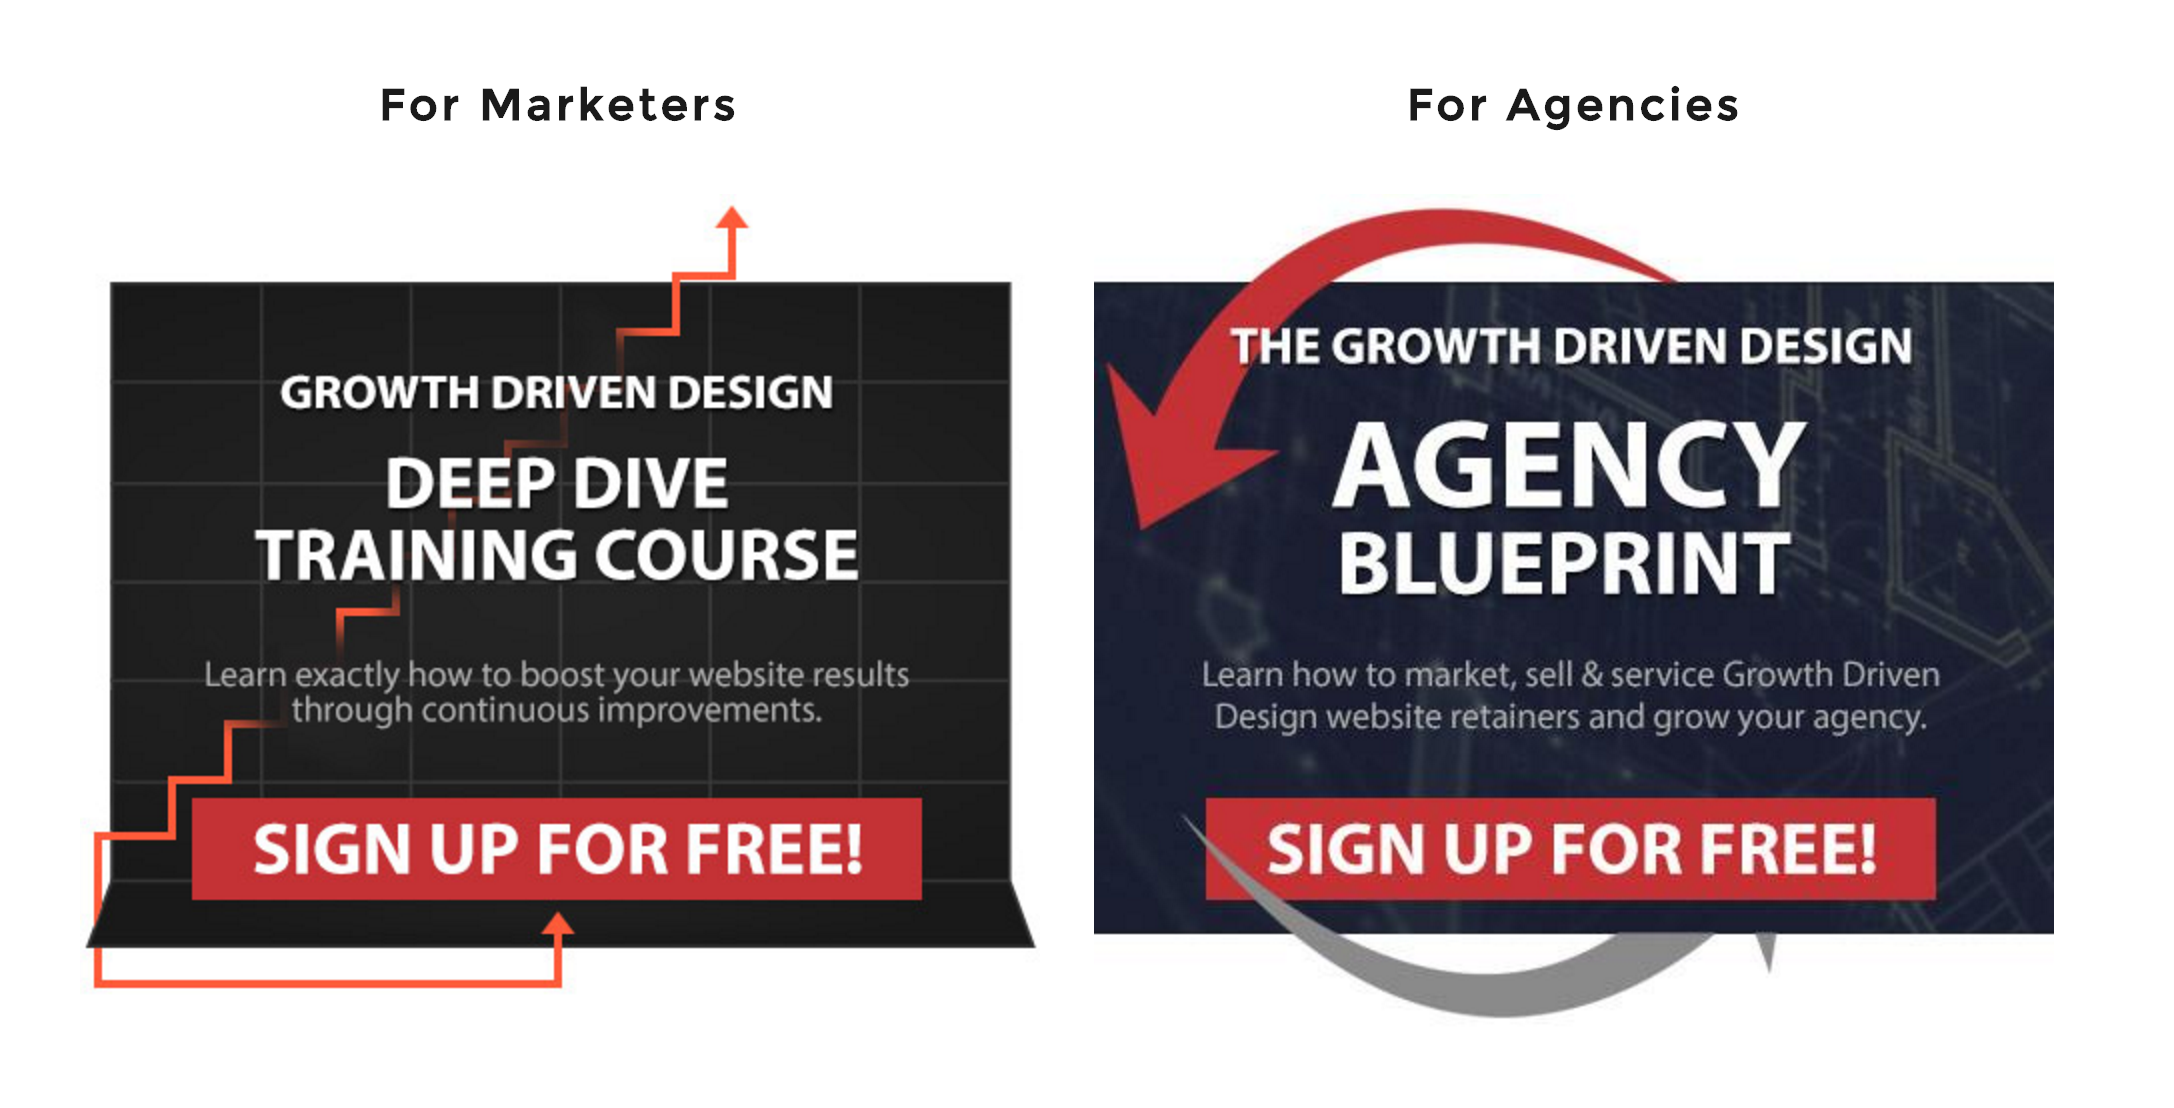 How to create kick ass ctas for every page of your website those are two great big ctas right in the middle of the home page even if you dont know anything about growth driven design the website helps you malvernweather Choice Image